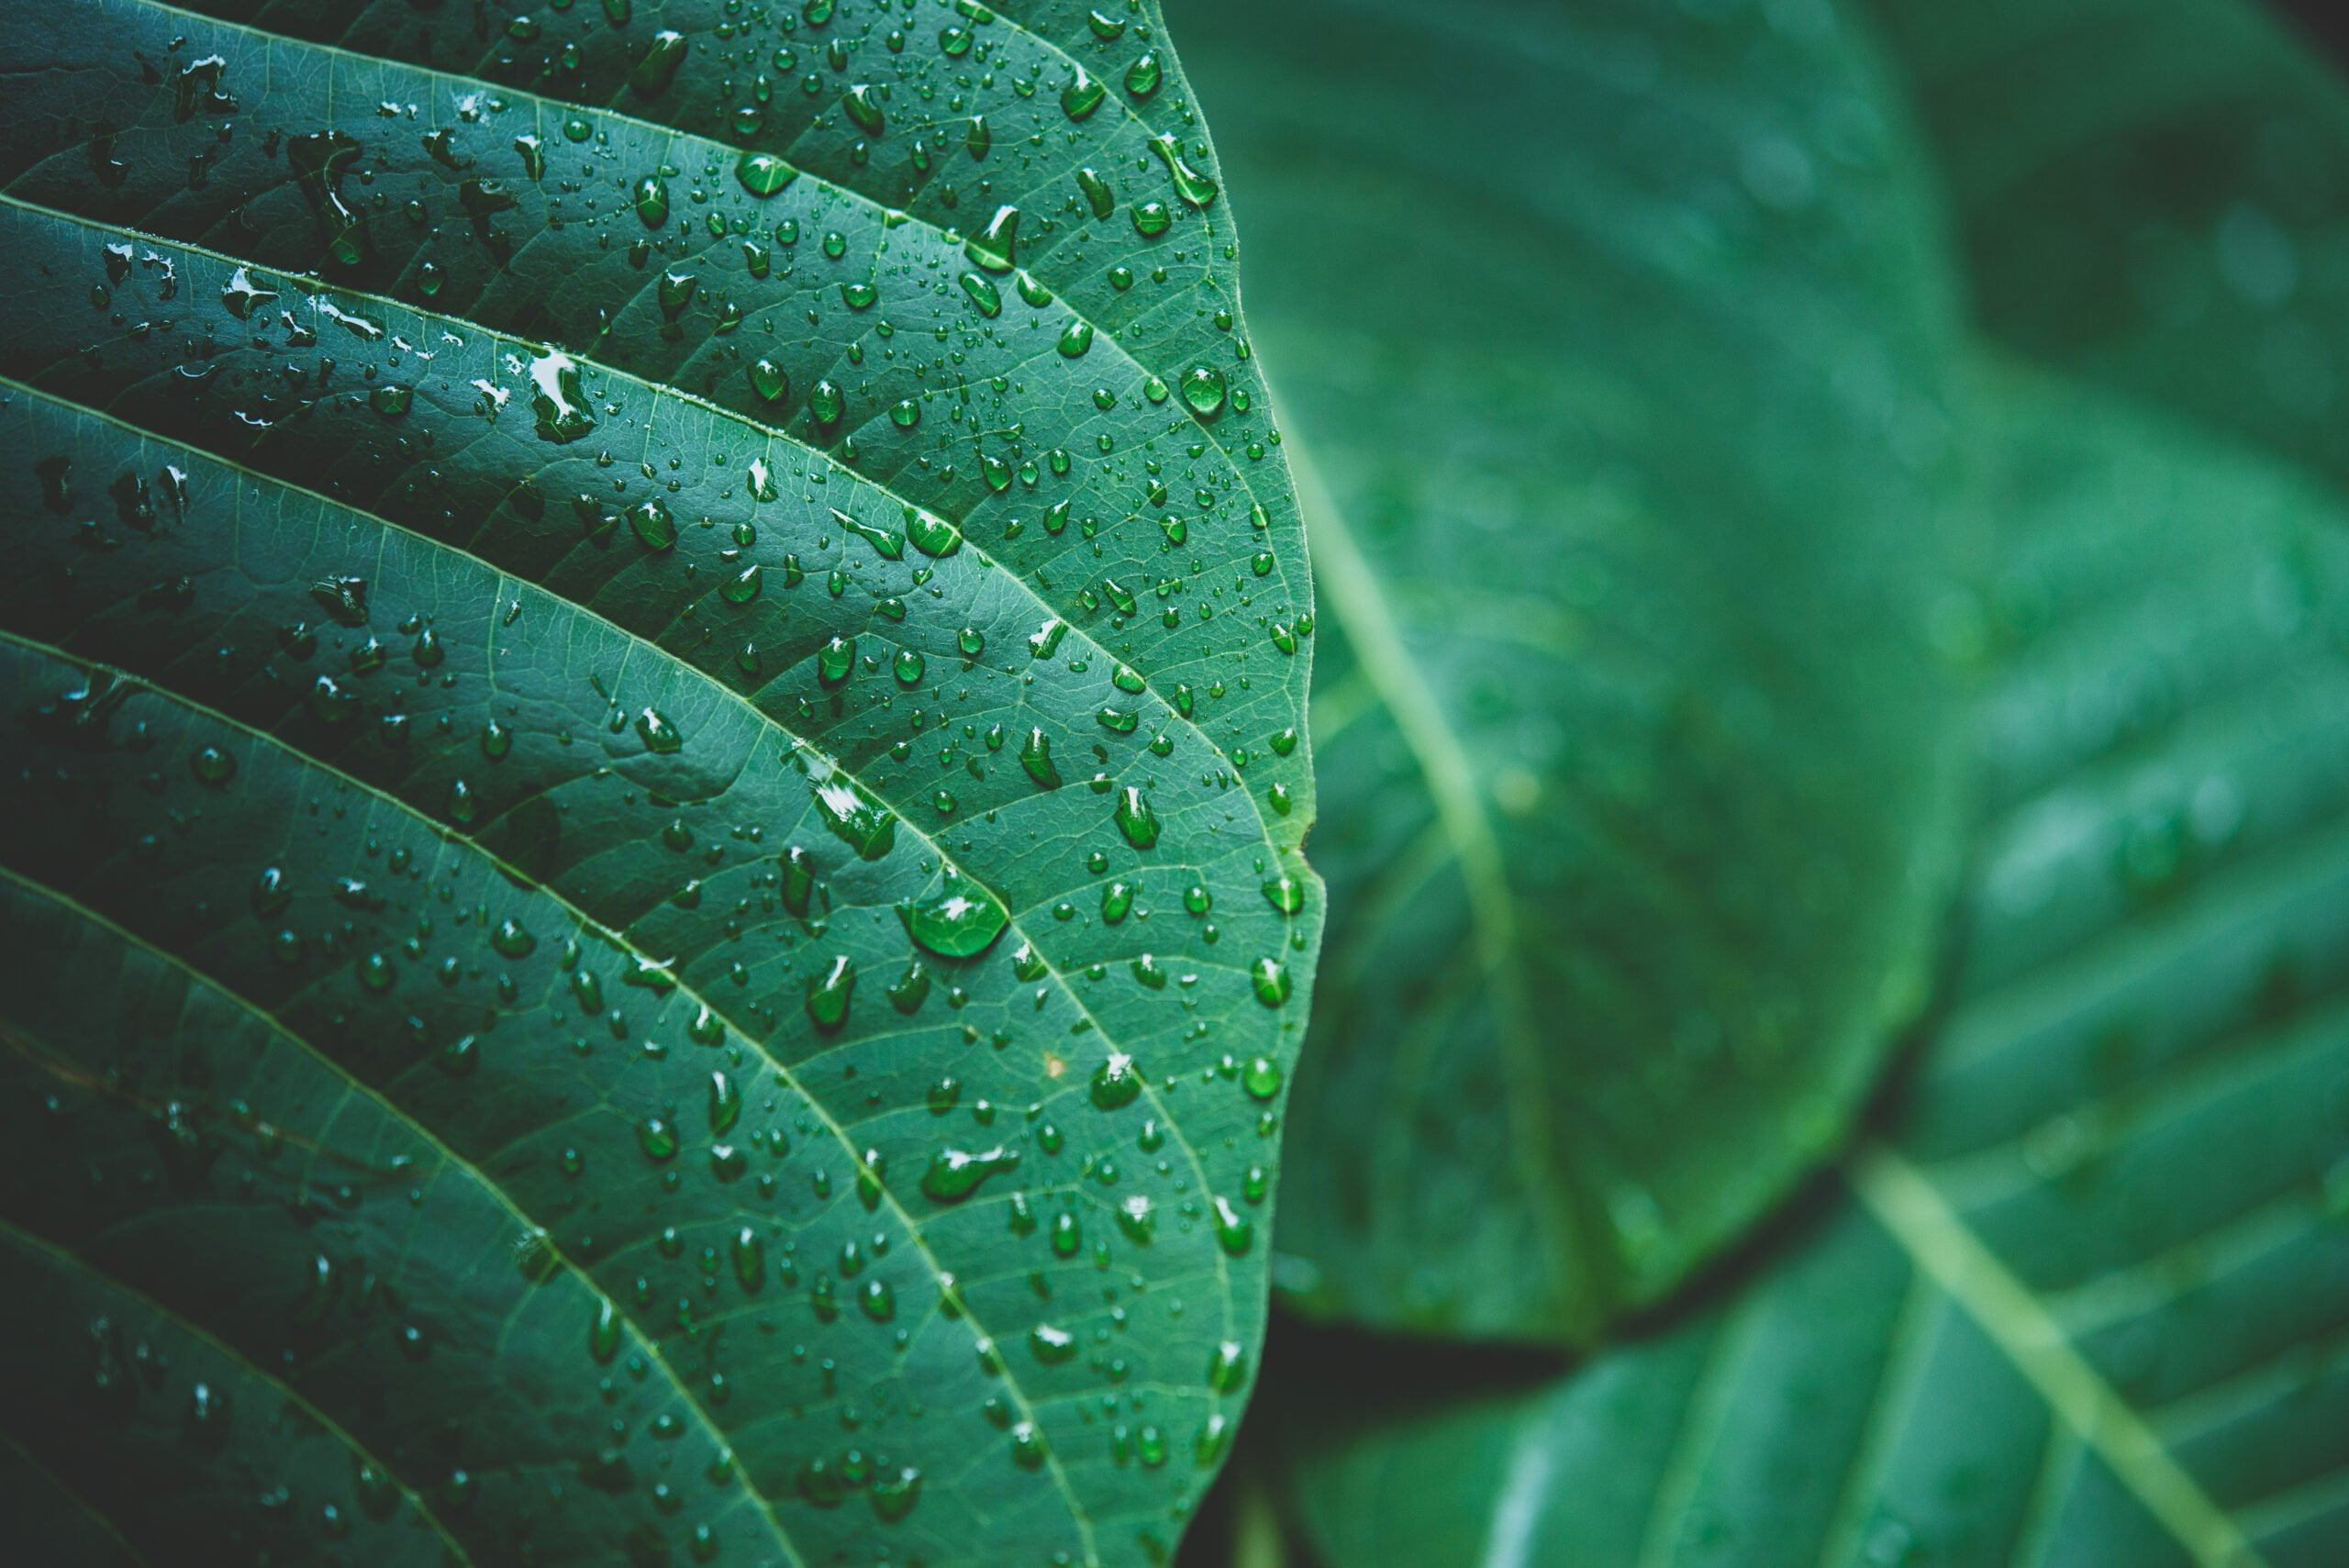 rain water on a green leaf macro. Drops of dew in the morning